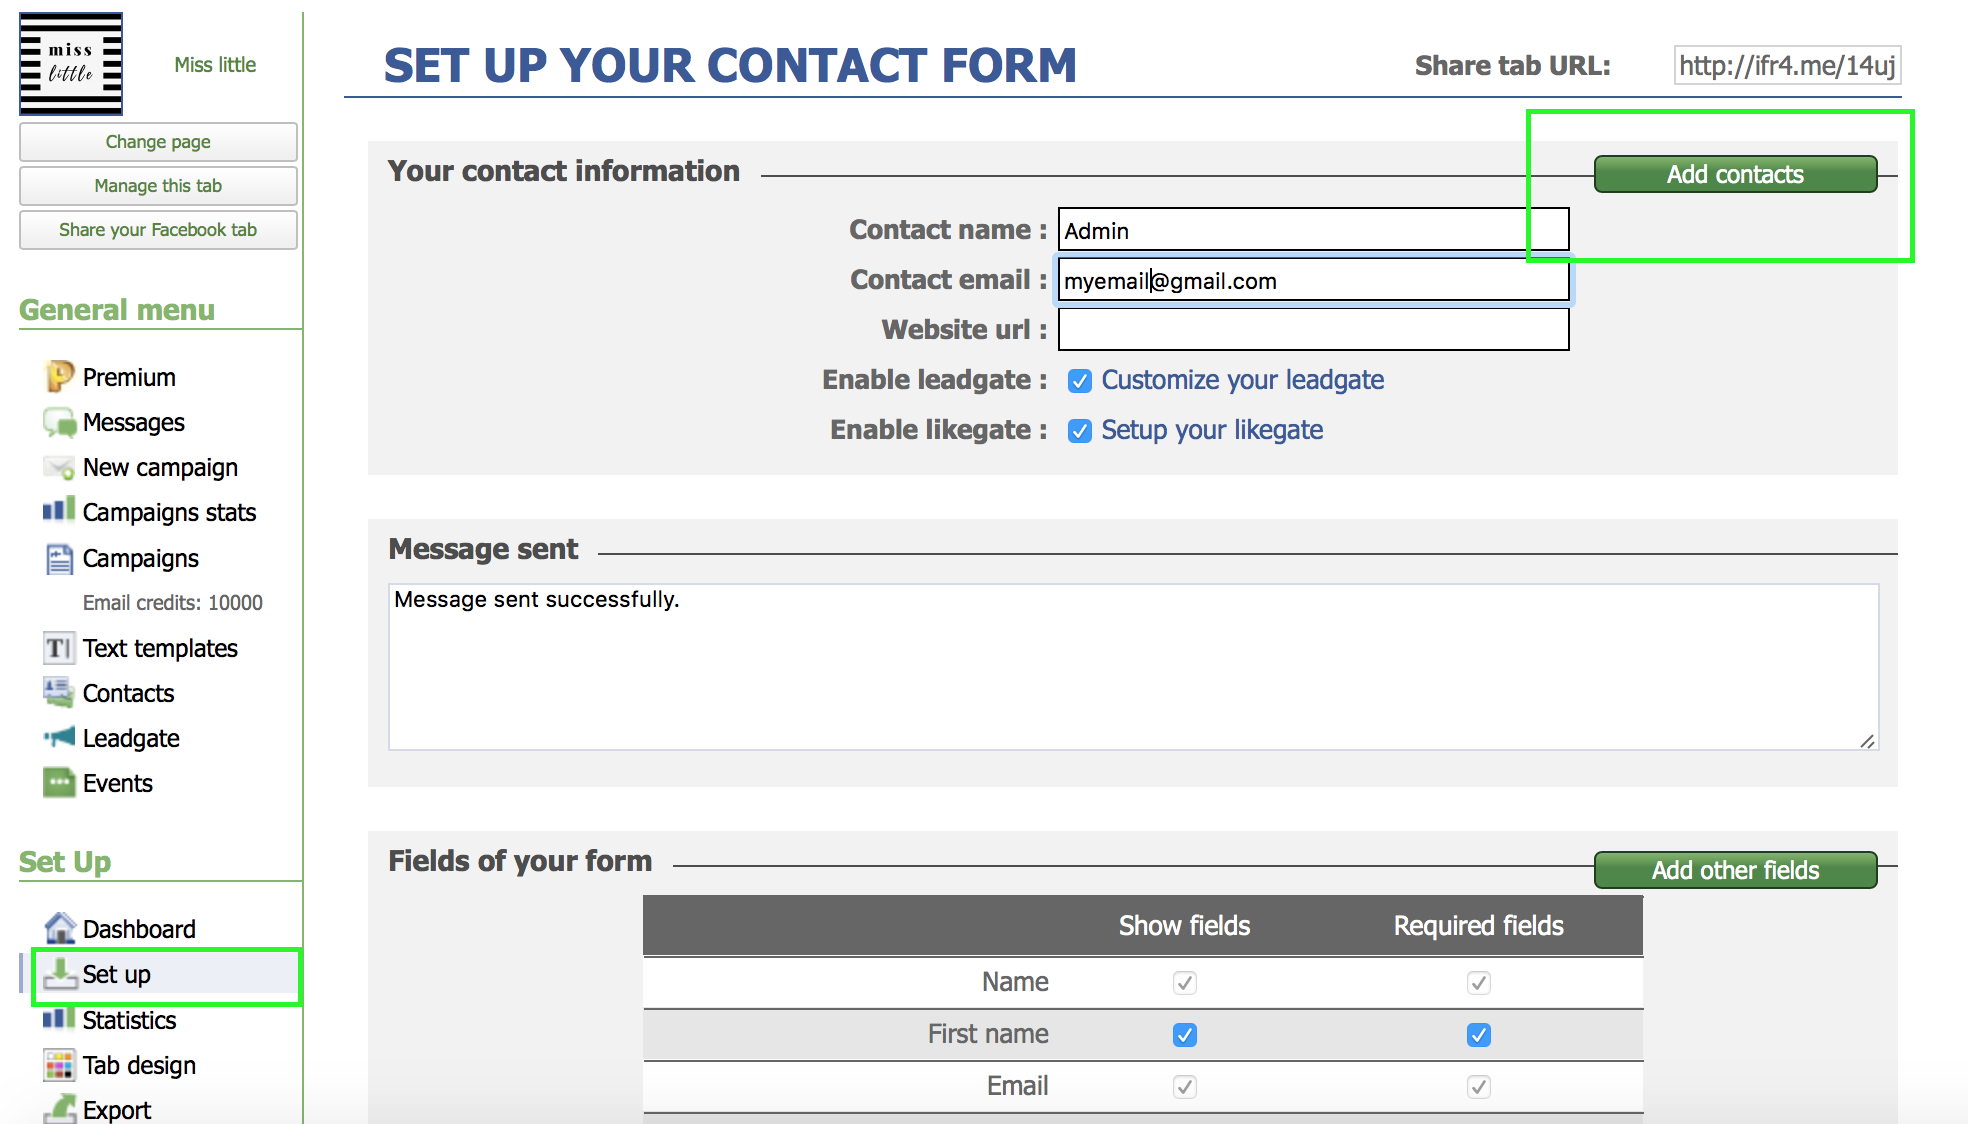 Add a new contact in contact form